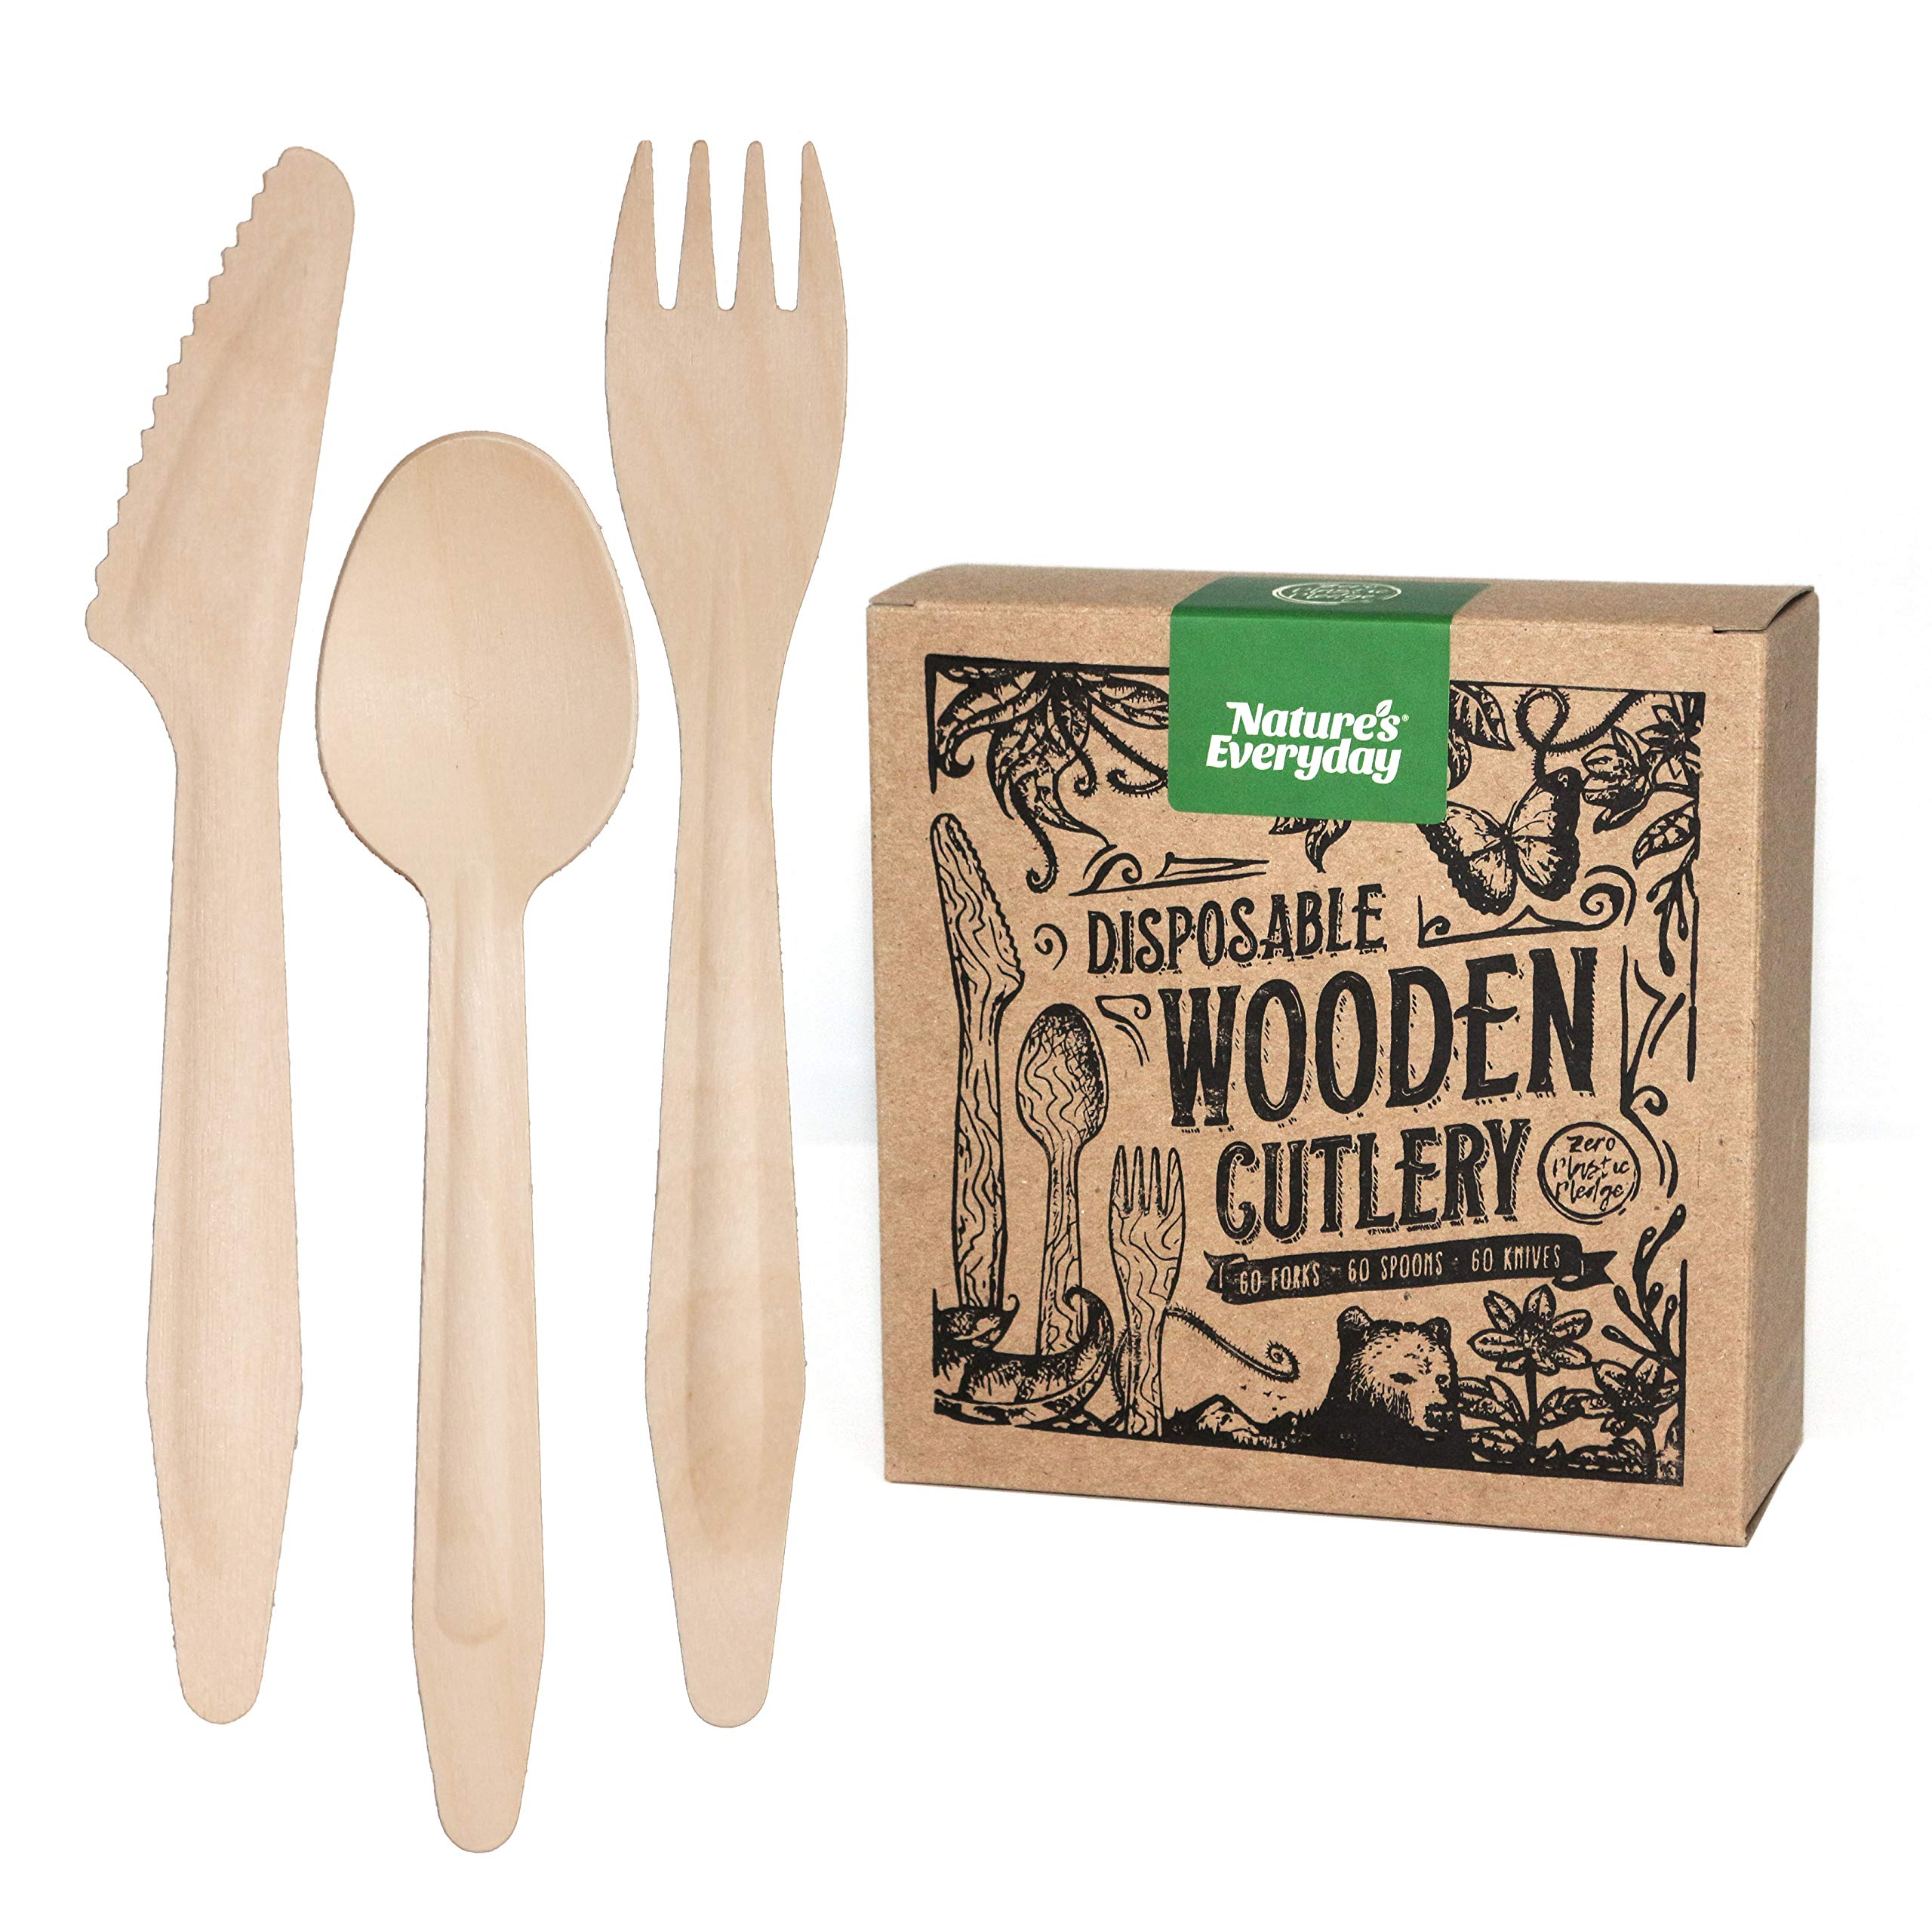 Large Full-Size Disposable Wooden Cutlery Set | 180 Extra Strong Deluxe Pieces (60 Forks, 60 Spoons, 60 Knives) in Plastic-Free Box | All-Natural, Eco-Friendly, Biodegradable, Compostable Birch Wood